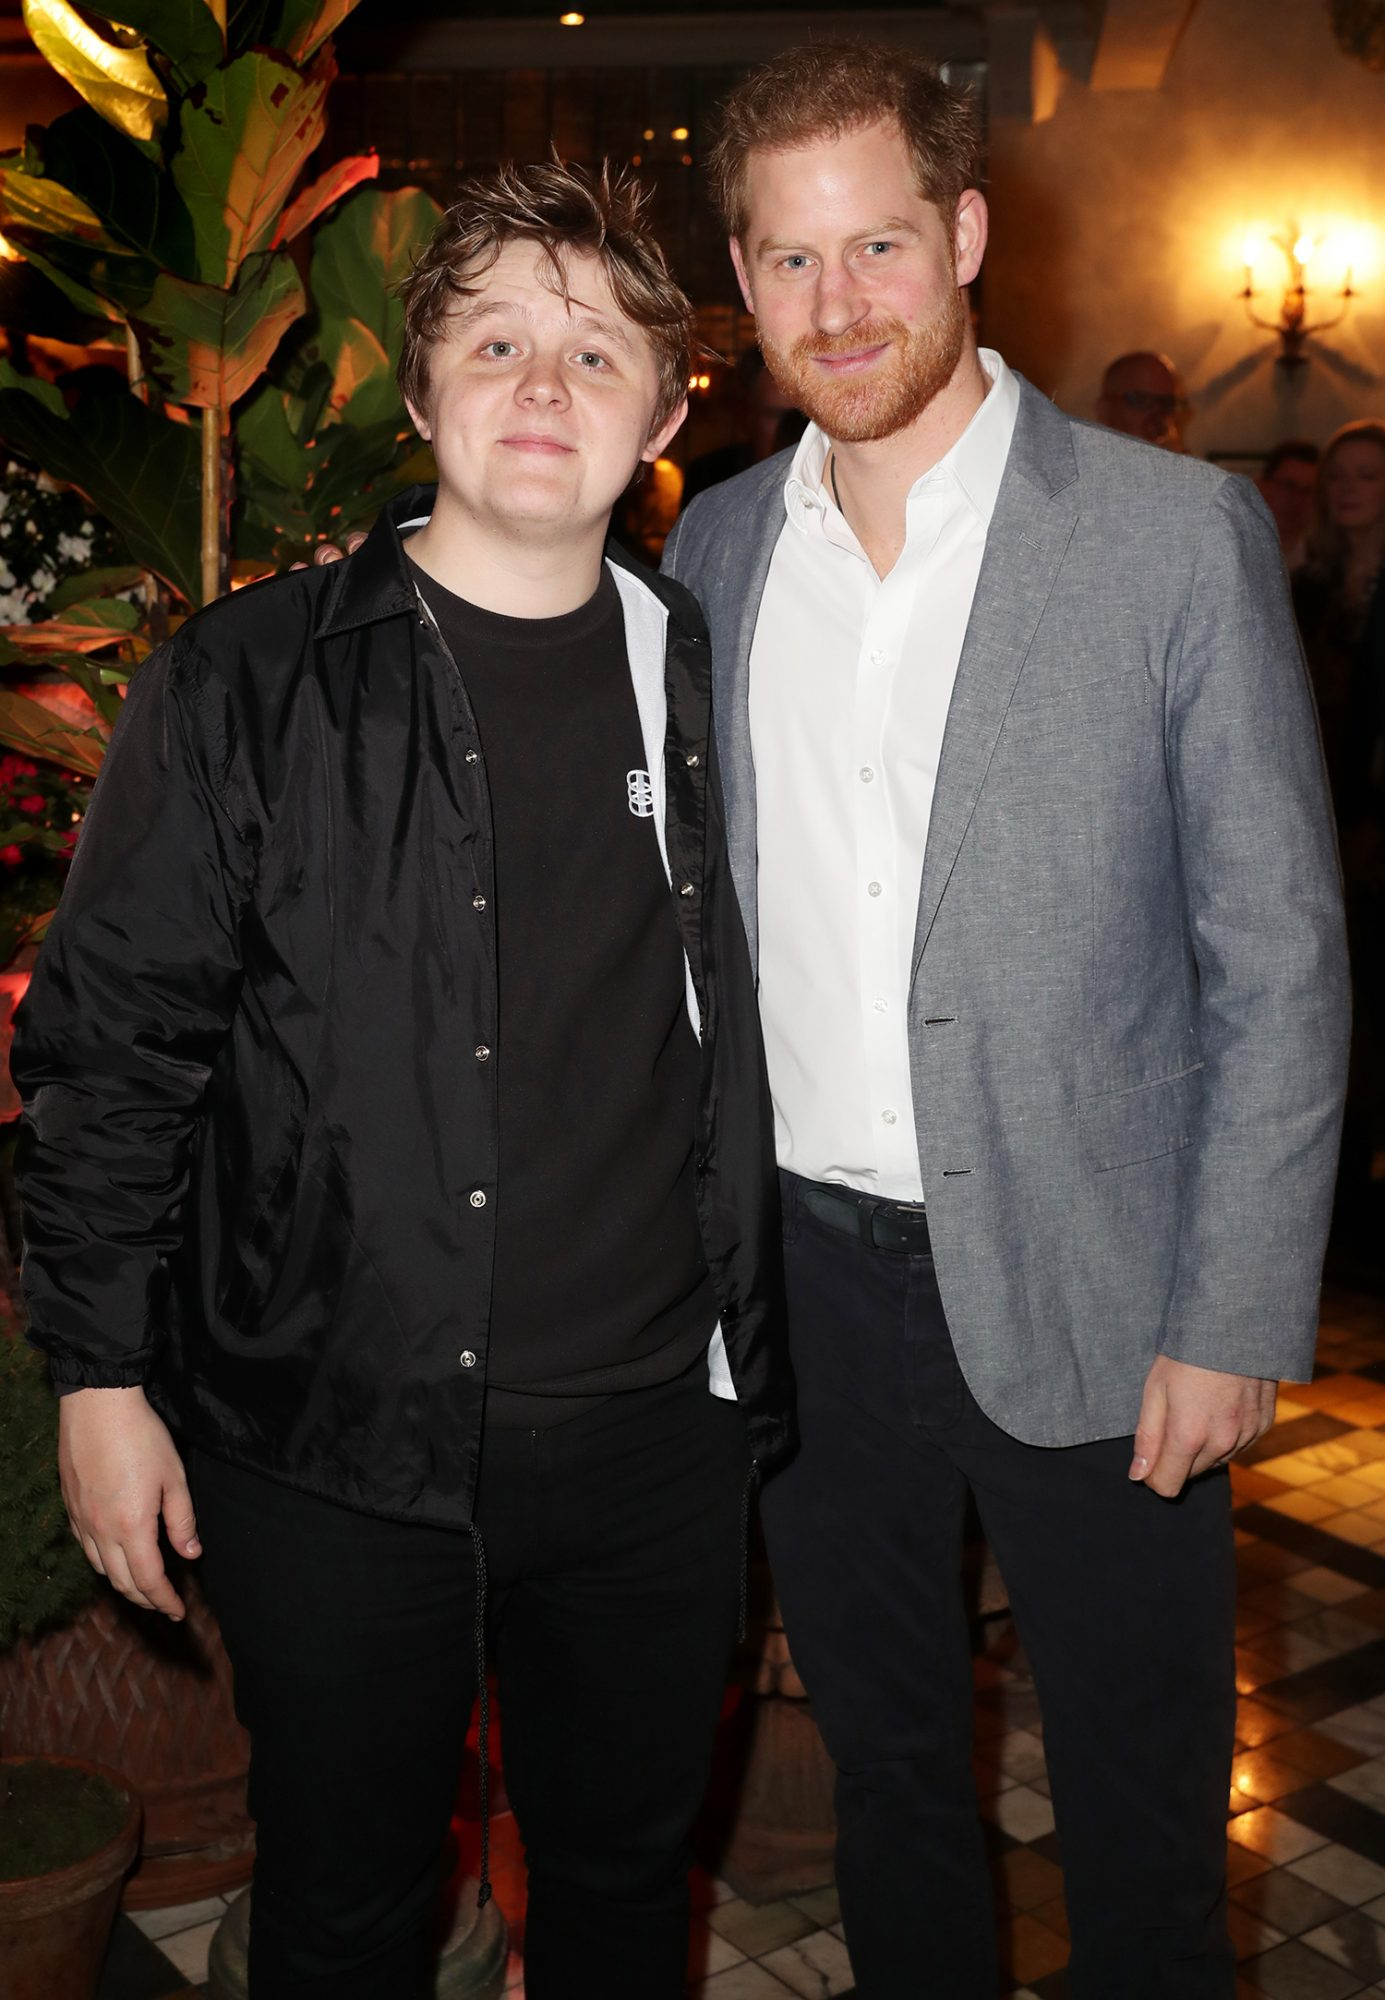 Lewis Capaldi poses with Prince Harry, Duke of Sussex as Sentebale held an event on January 19, 2020